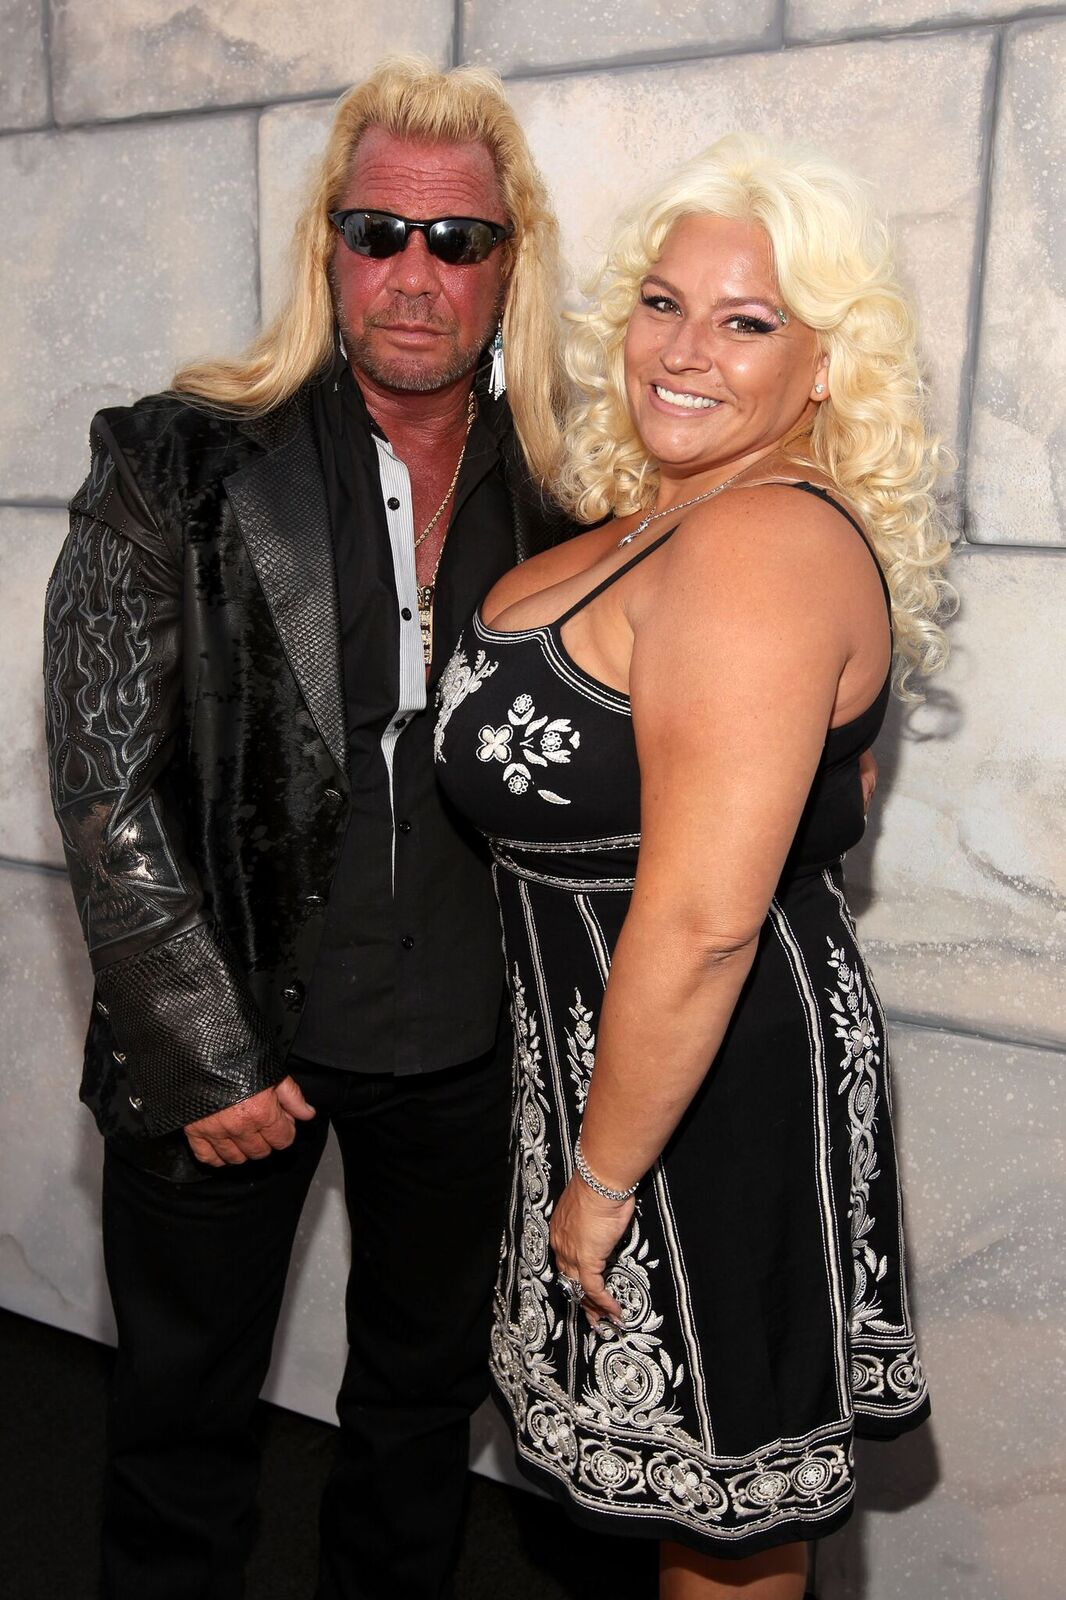 Tv personalities Dog The Bounty Hunter and Beth Smith arrive at Comedy Central's Roast of Charlie Sheen held at Sony Studios on September 10, 2011 in Los Angeles, California | Photo: Getty Images